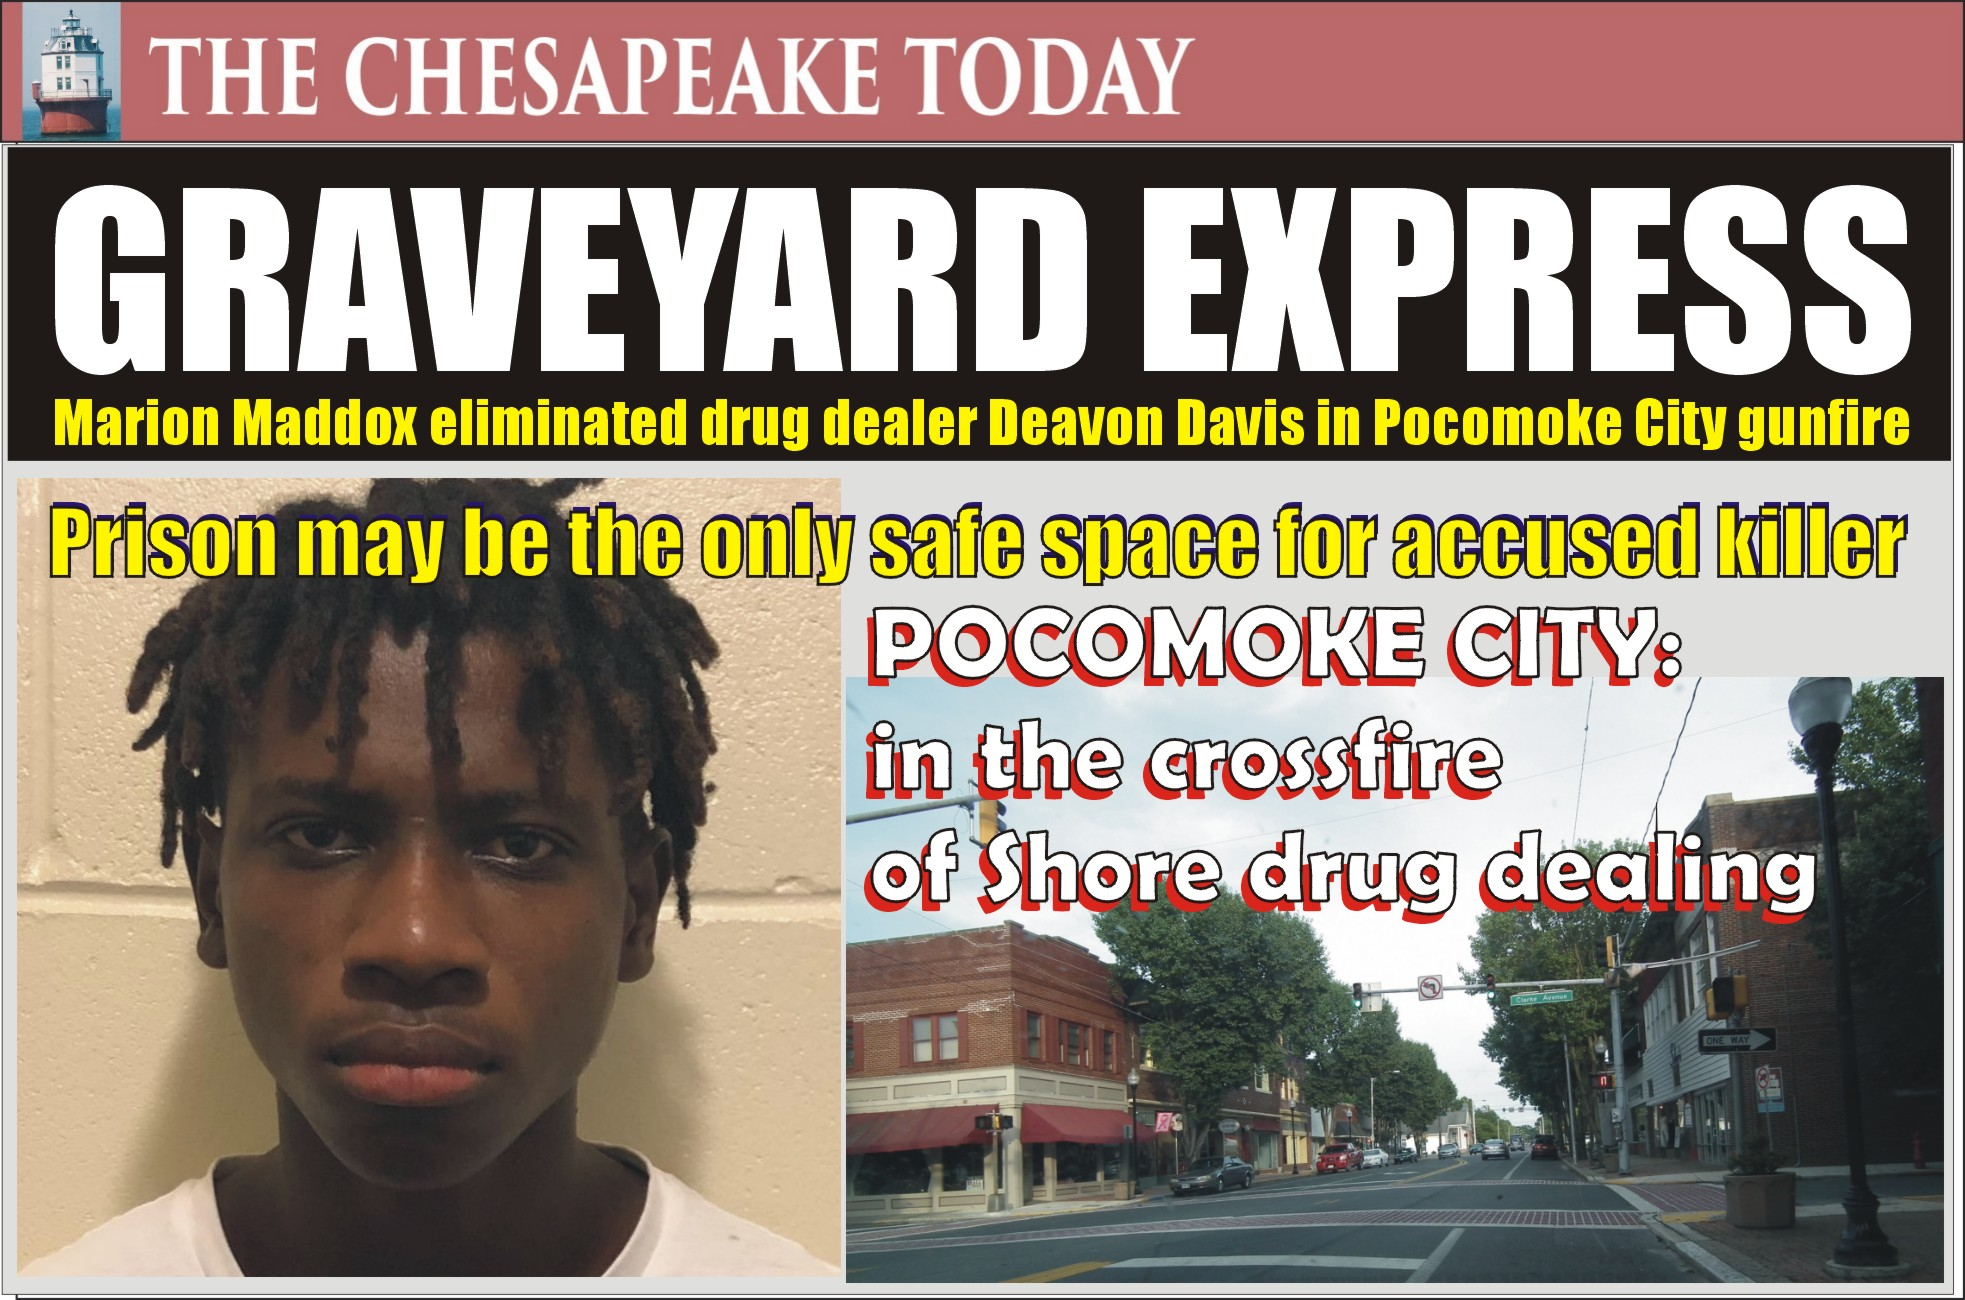 MURDER USA: Marion Maddox kicks off his criminal career by sending drug dealer Deavon Davis to his grave with a volley of bullets